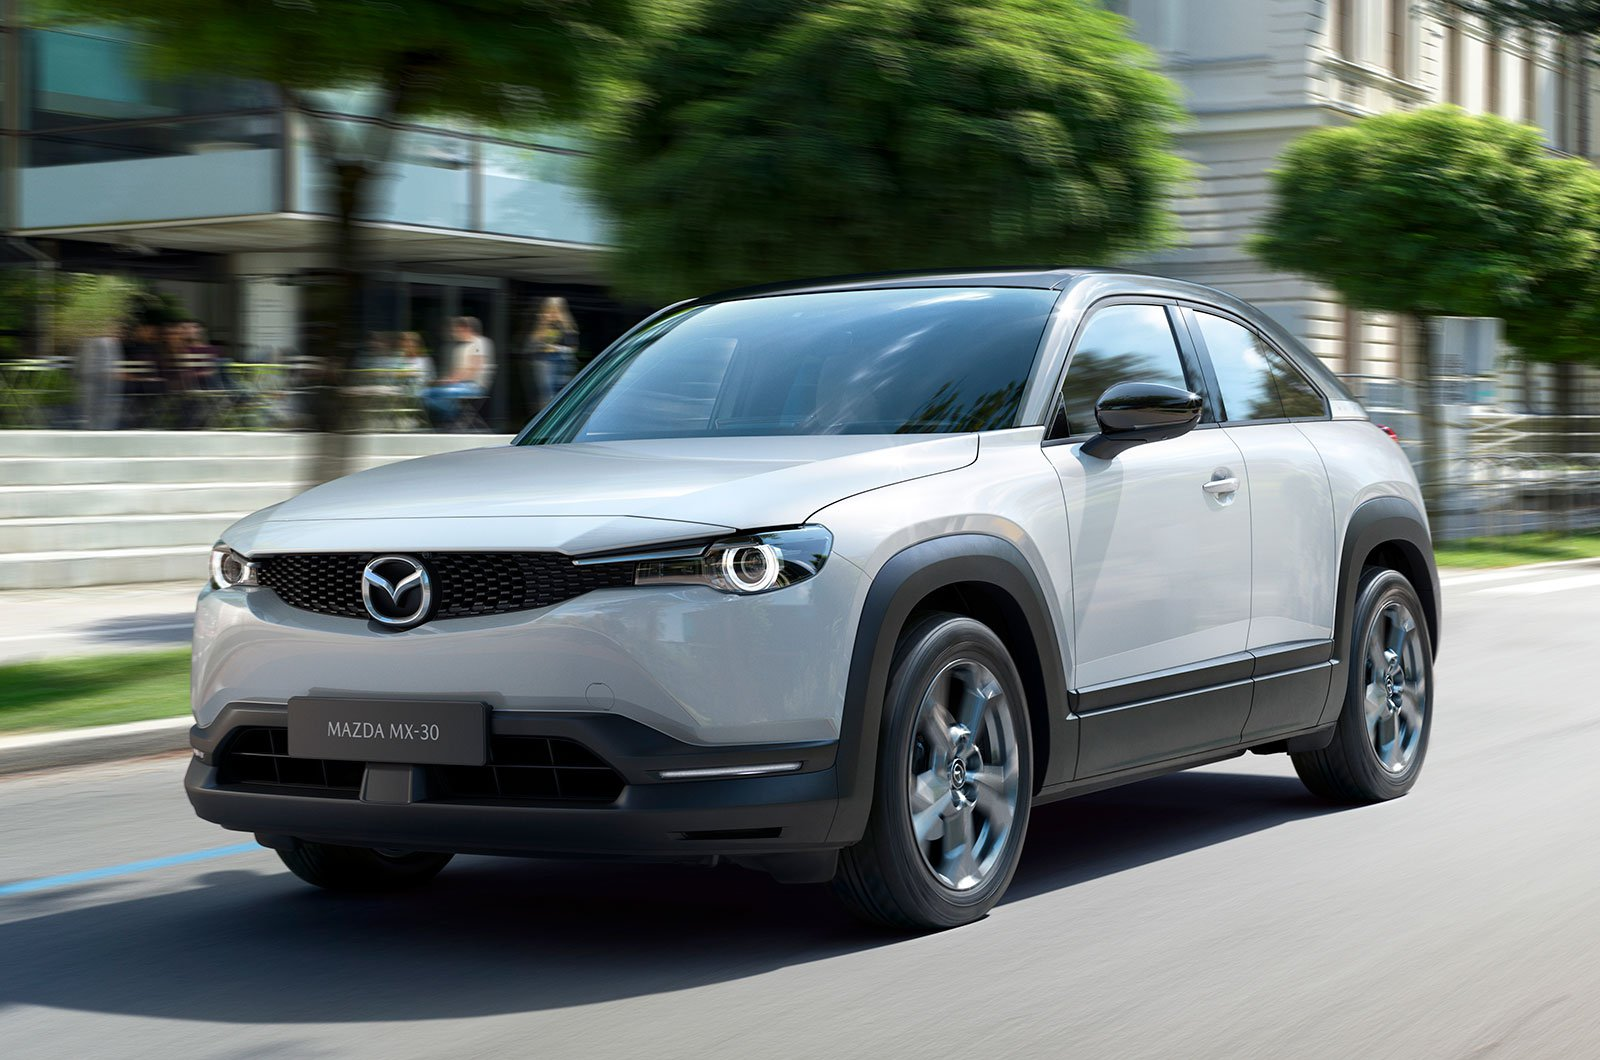 2021 mazda mx-30 electric suv revealed: price, specs and